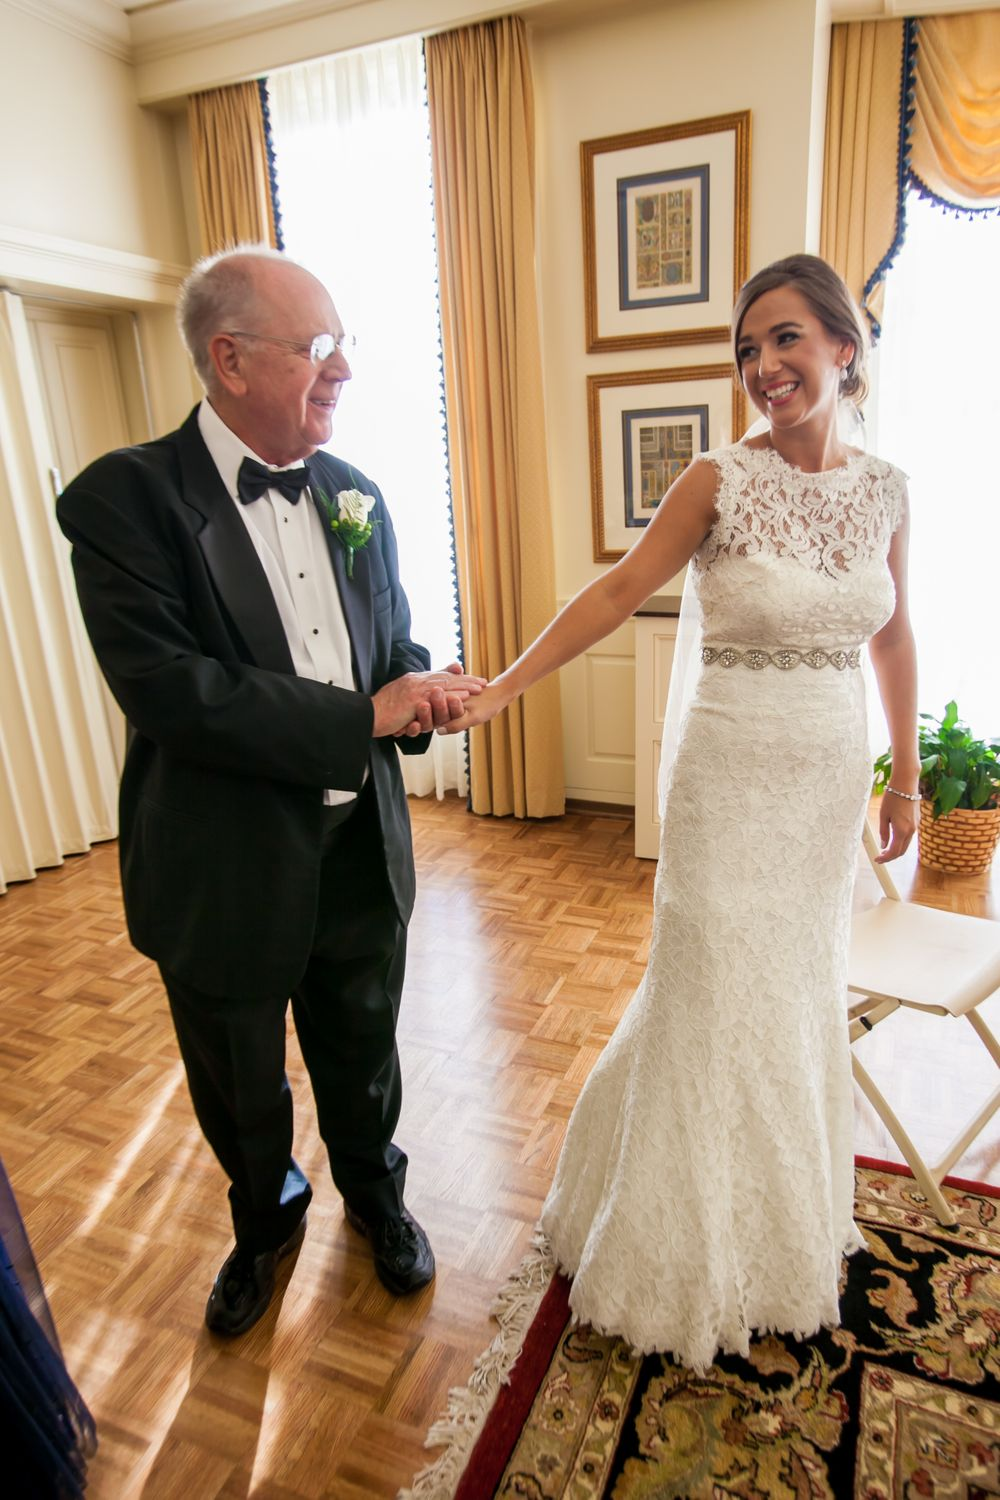 Page has a First Look with her father before her wedding at Eastminster Presbyterian Church in Columbia, SC.